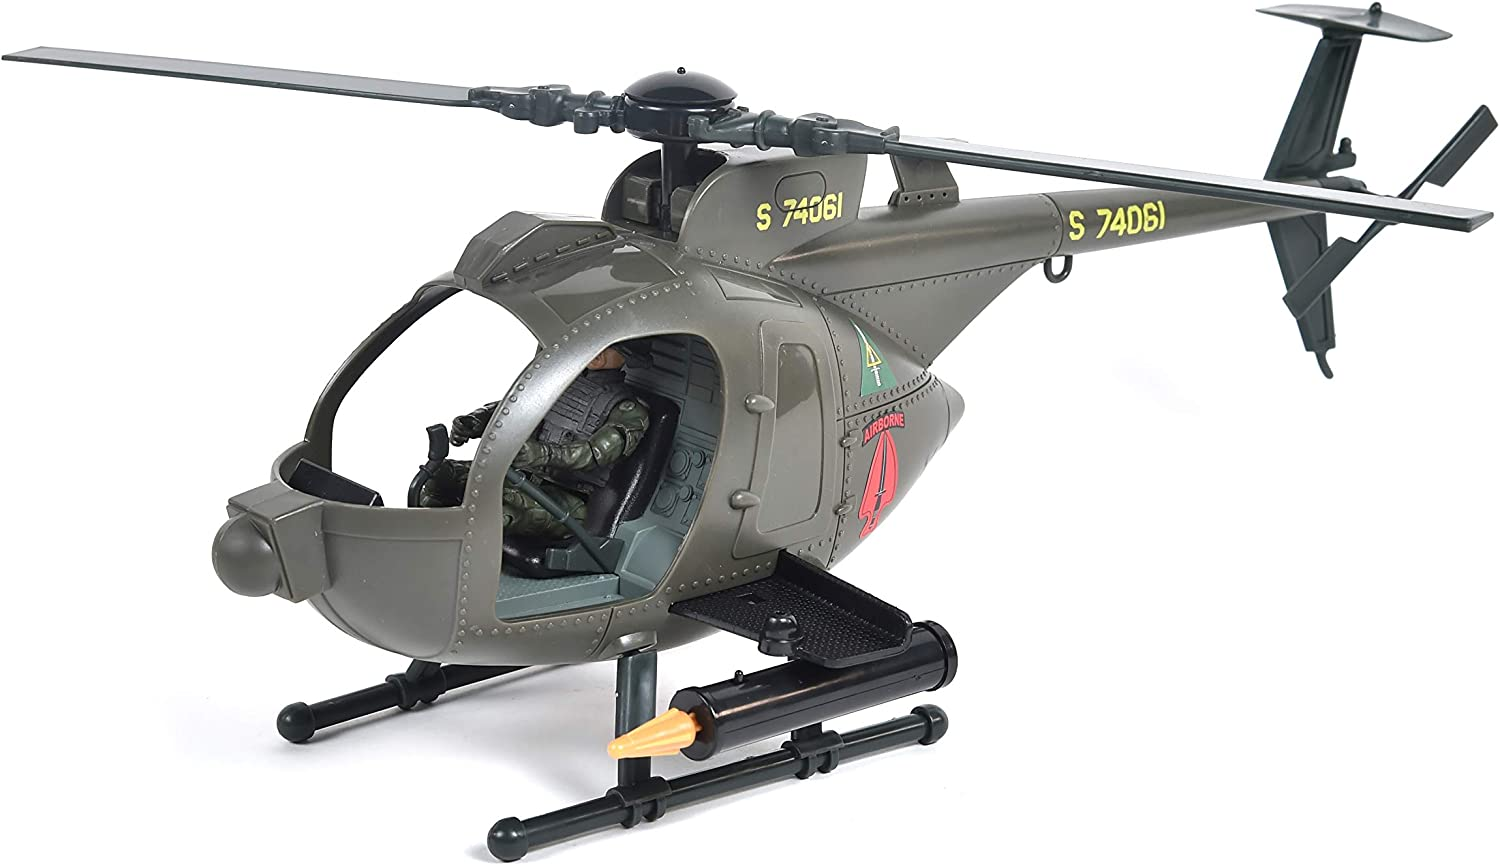 Army Strike MH-6 Spec Ops Little Bird Helicopter – Vehicle Playset with 2 Action Figures and Realistic Accessories | Military Toy Set for Kids – Elite Force